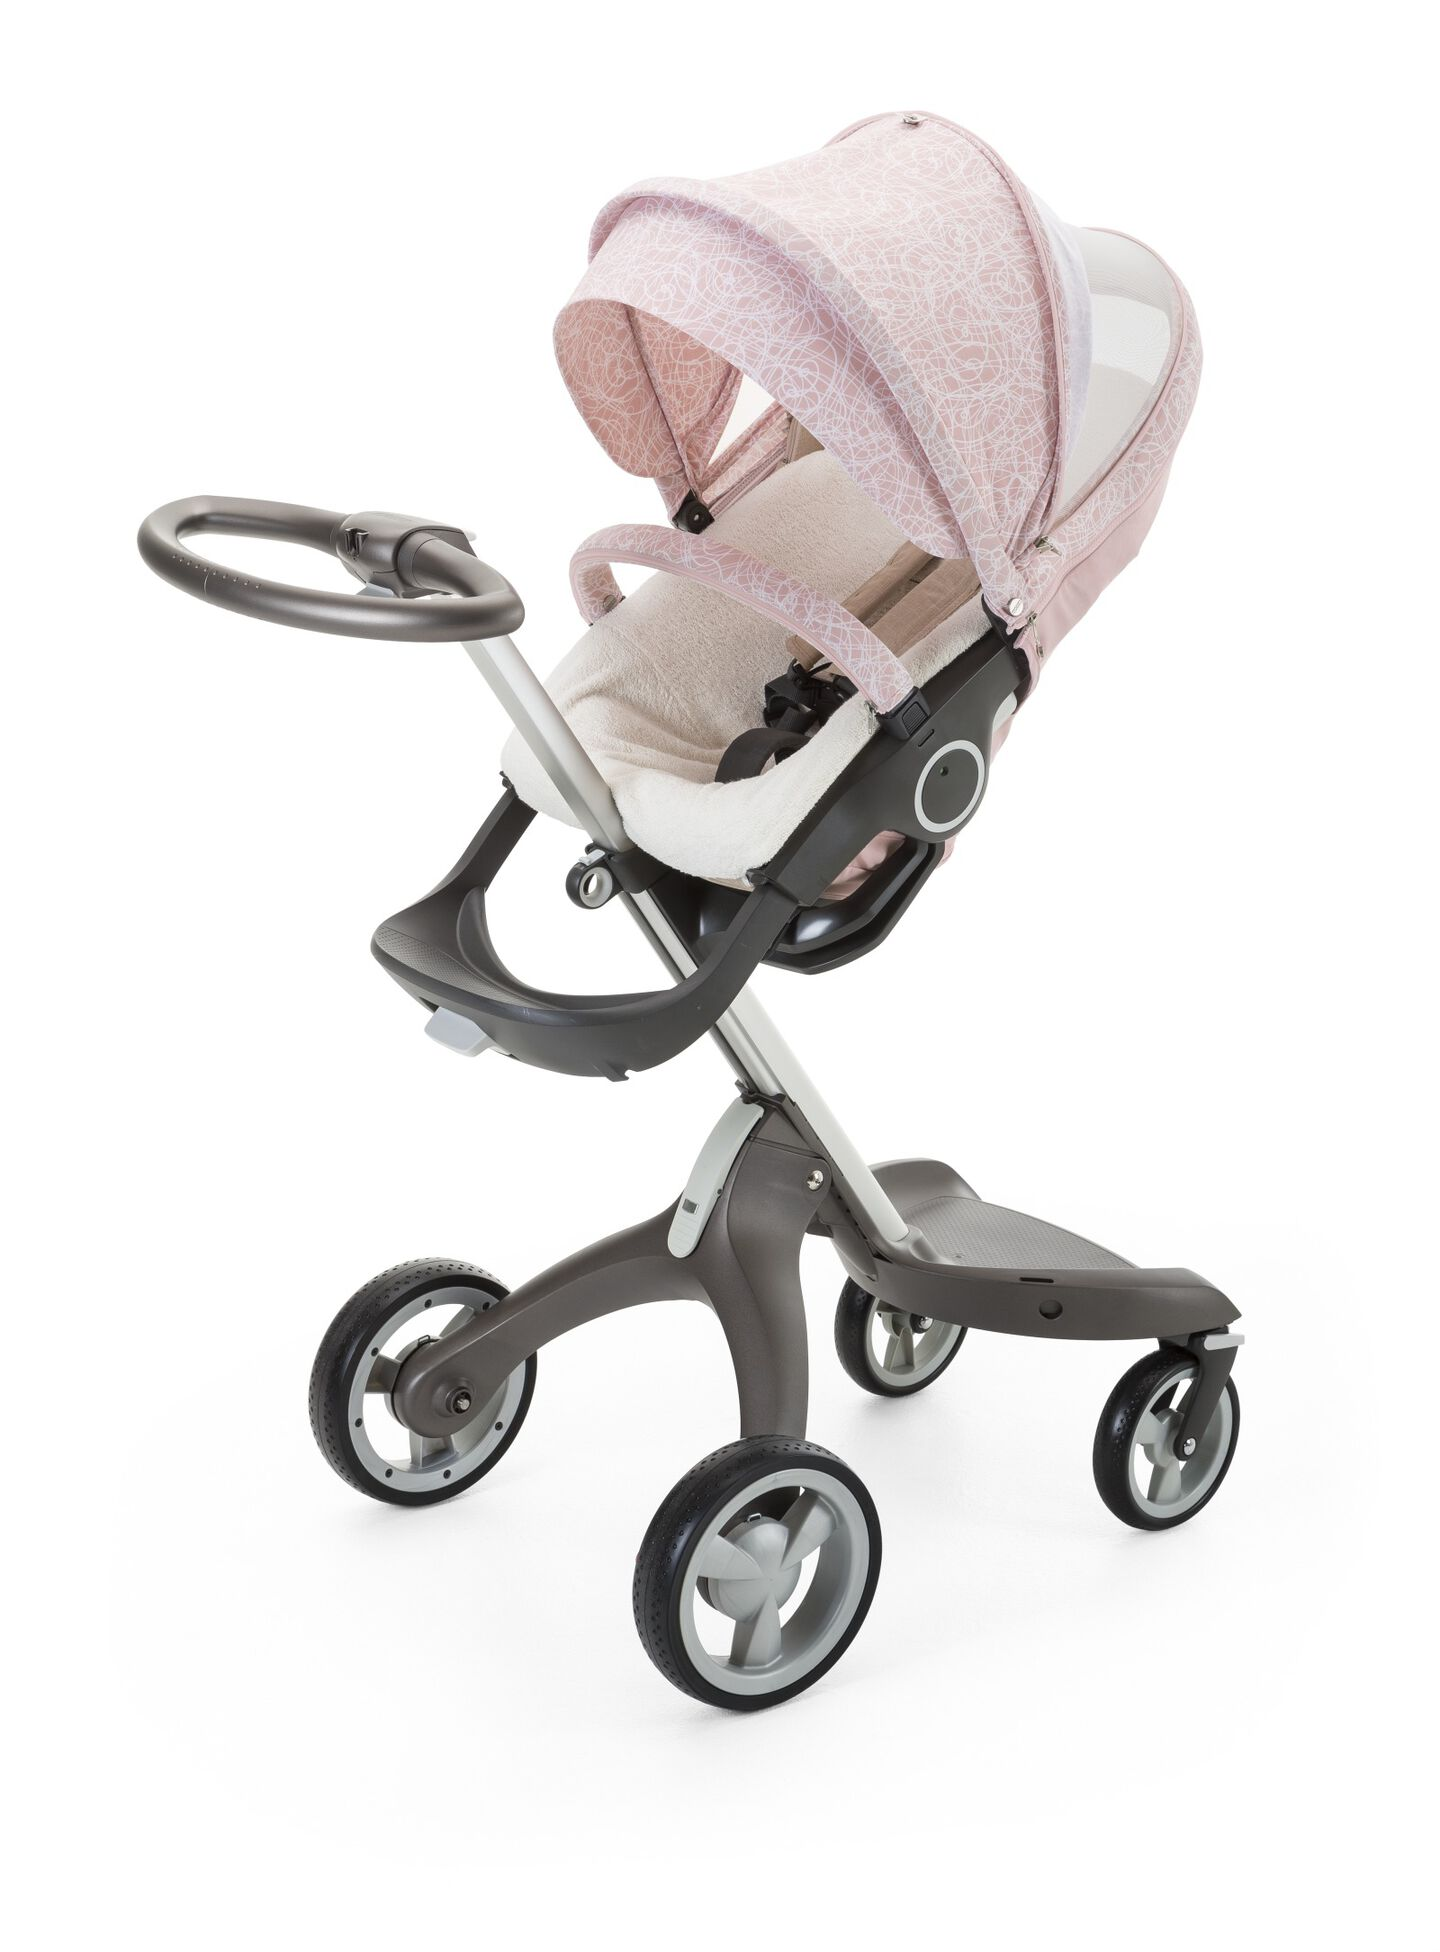 Stokke® Xplory® with Stokke® Stroller Summer Kit Scribble Faded Pink.